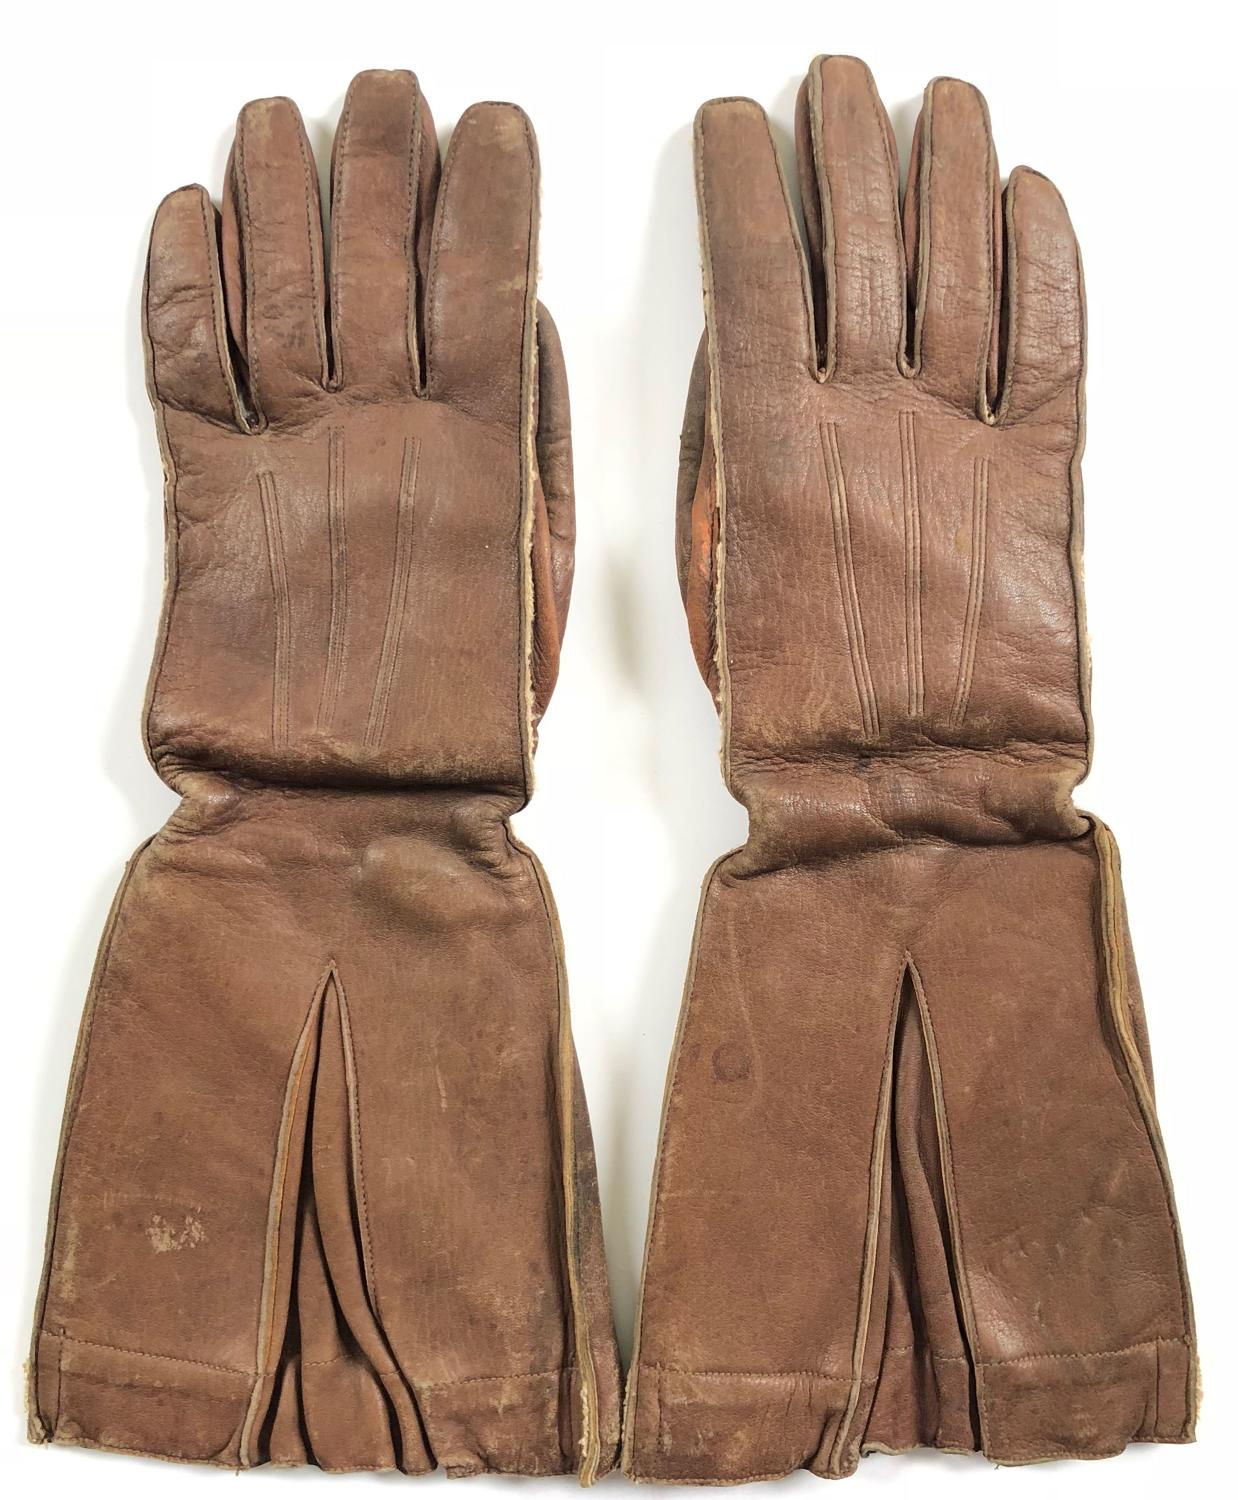 WW2 RAF 1941 Pattern Aircrew Flying Gauntlets.